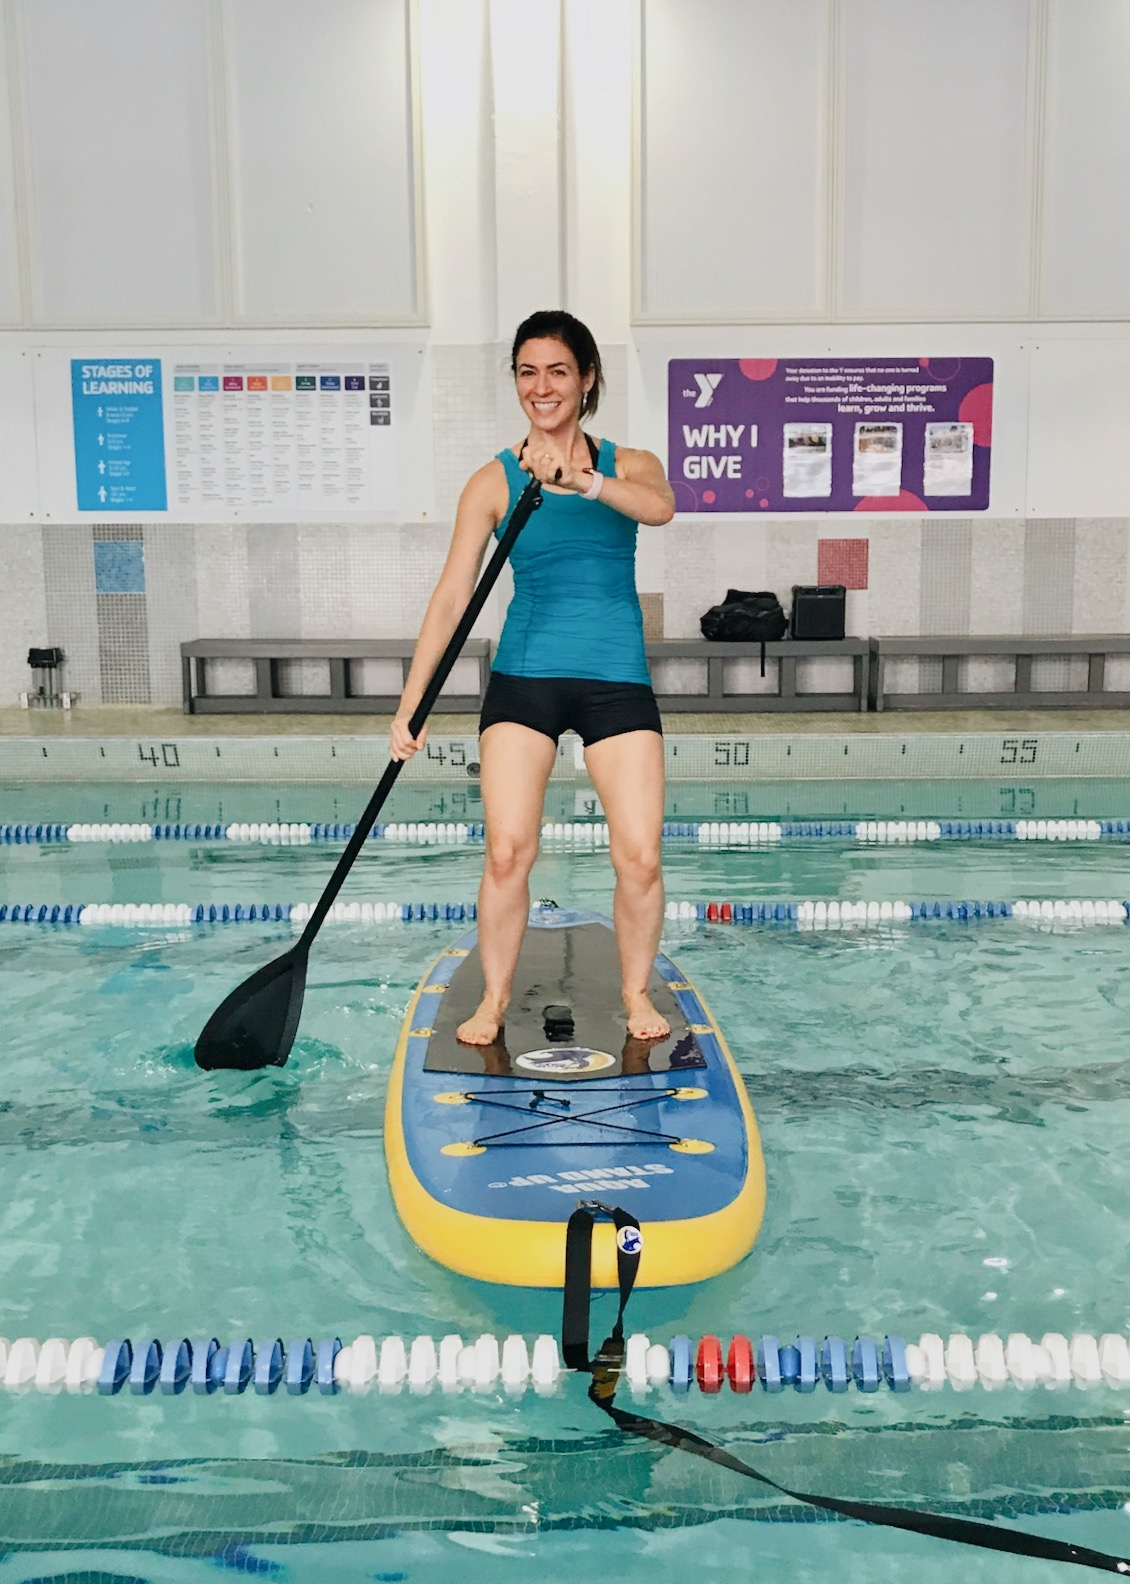 What to expect at a SUP exercise class - Aqua Stand Up group exercise - fitnessista.com #SUP #SUPexercise #SUPfitness #groupexercise